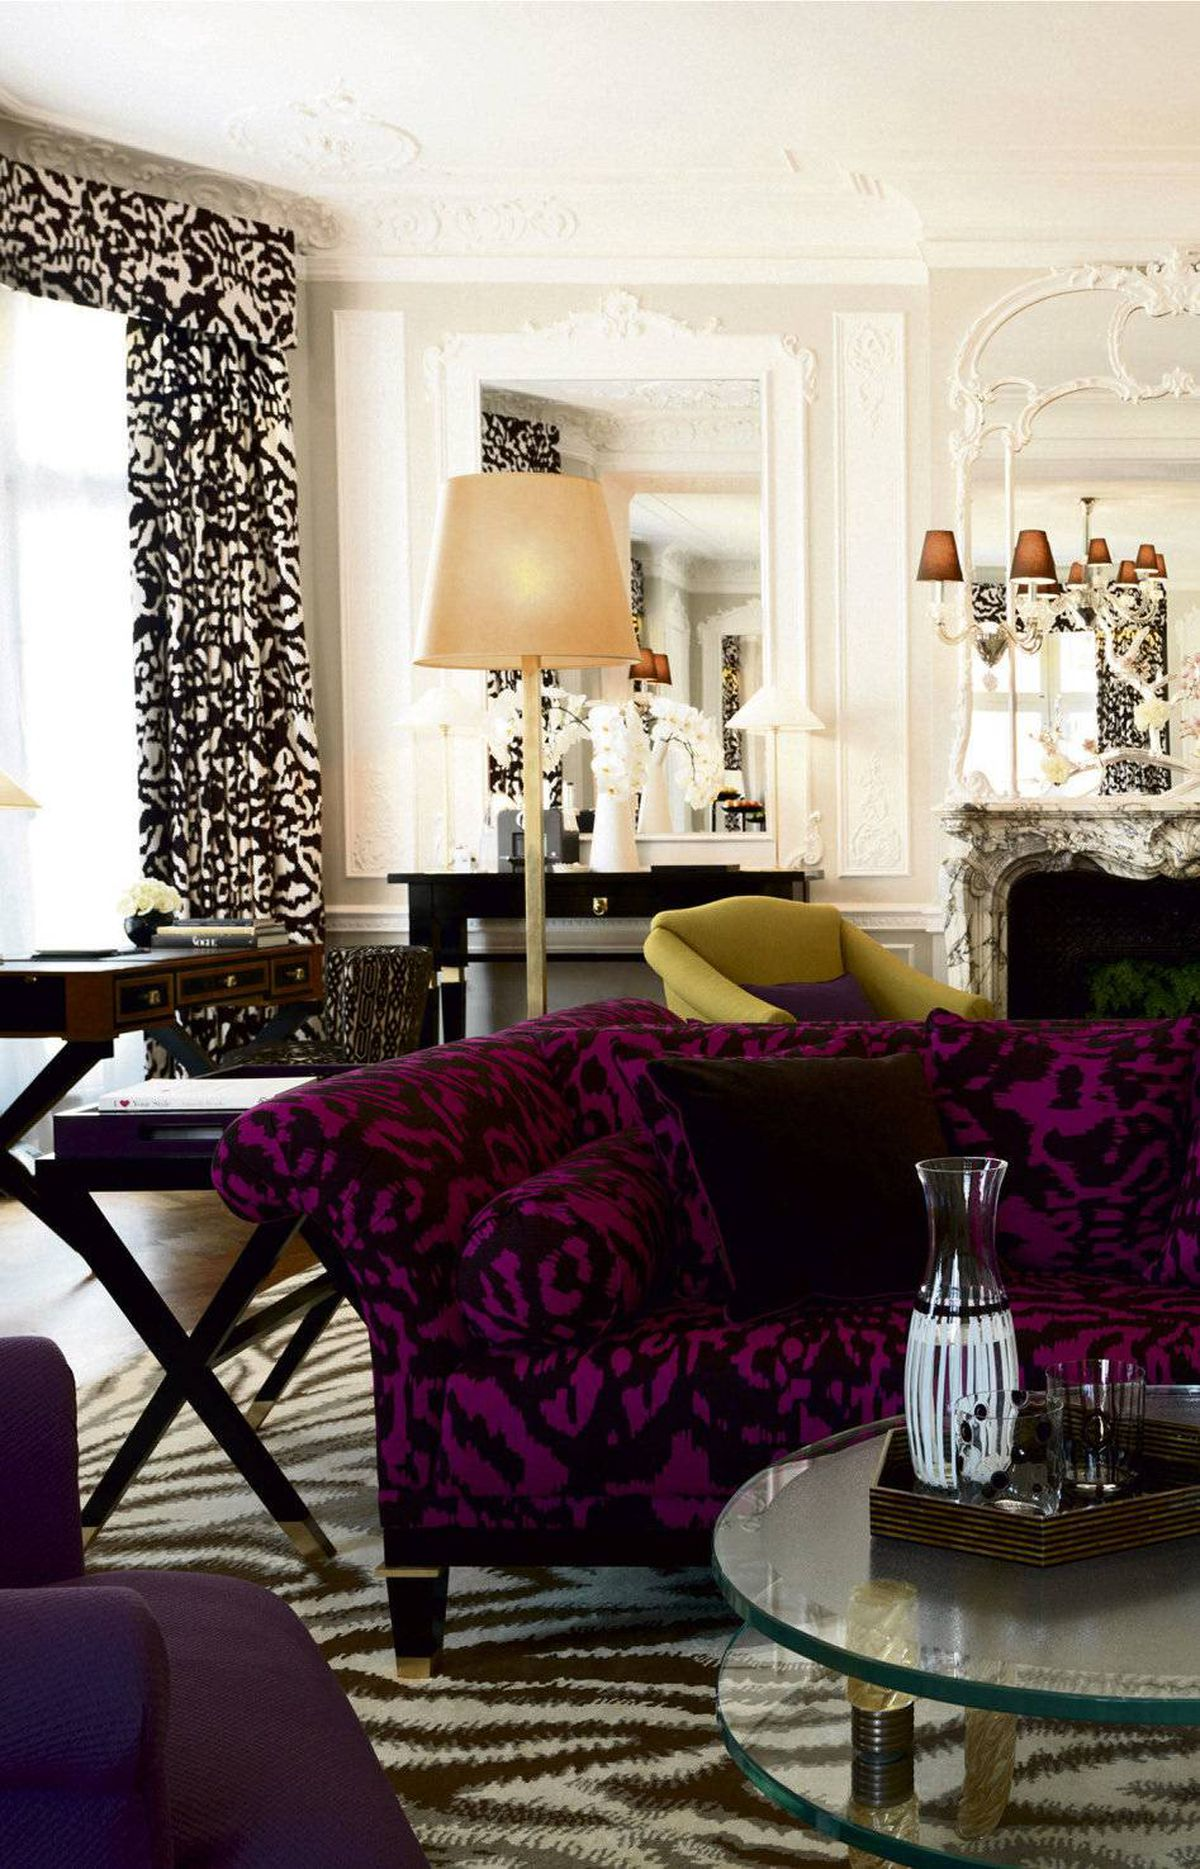 CLASHING PATTERNS Witness this suite design for Claridge's, the London hotel, by fashion's Diane von Furstenberg: Although the sofa, drapes and carpet sport varying screaming patterns, all are black in tone and only one has an attention-grabbing (purple) base. Visit www.claridges.co.uk for further inspiration.